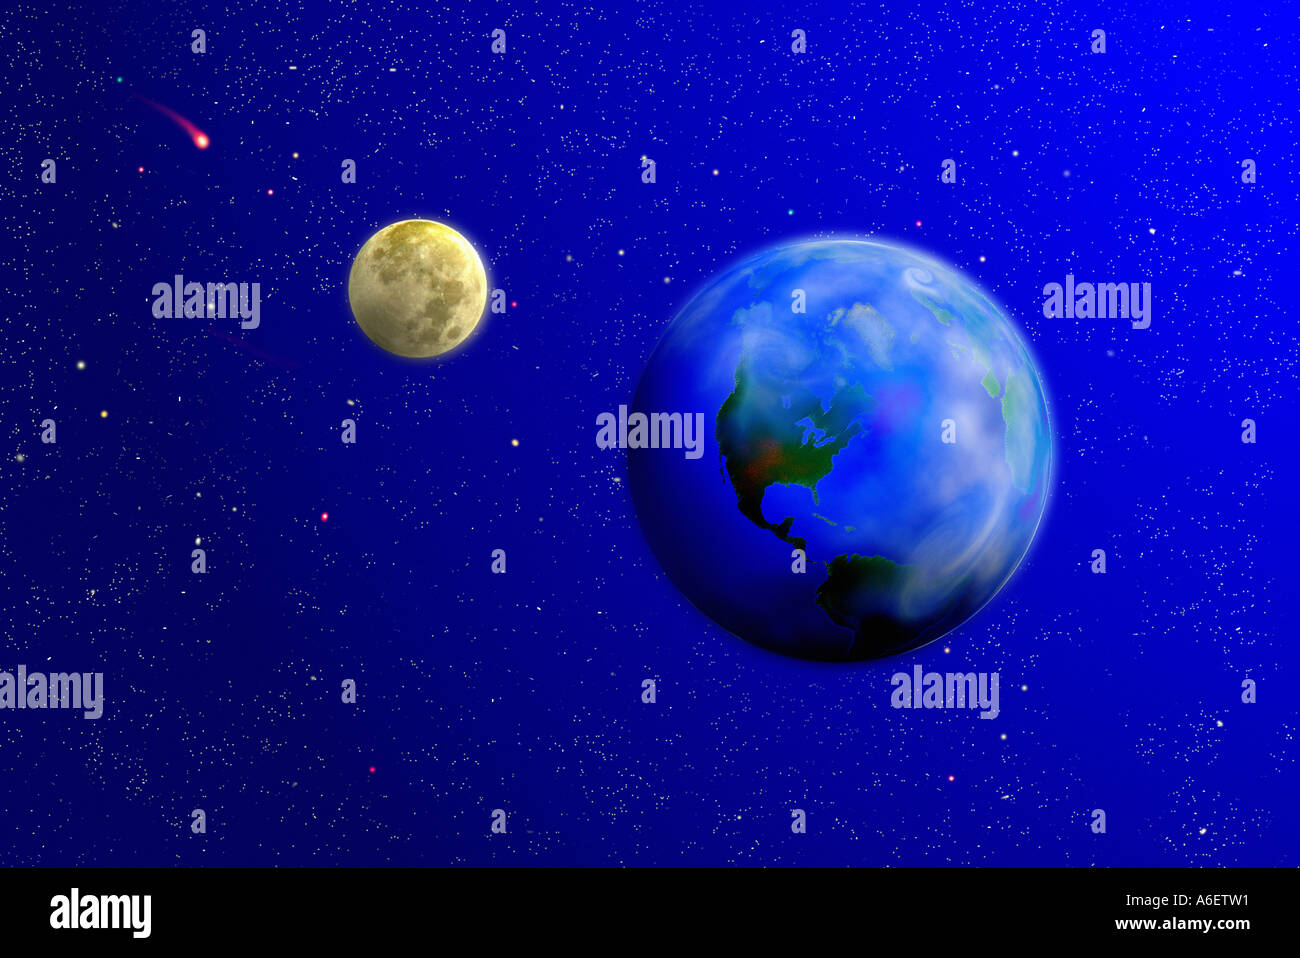 Digital illustration of the planet Earth and the moon against a background of stars comets Stock Photo